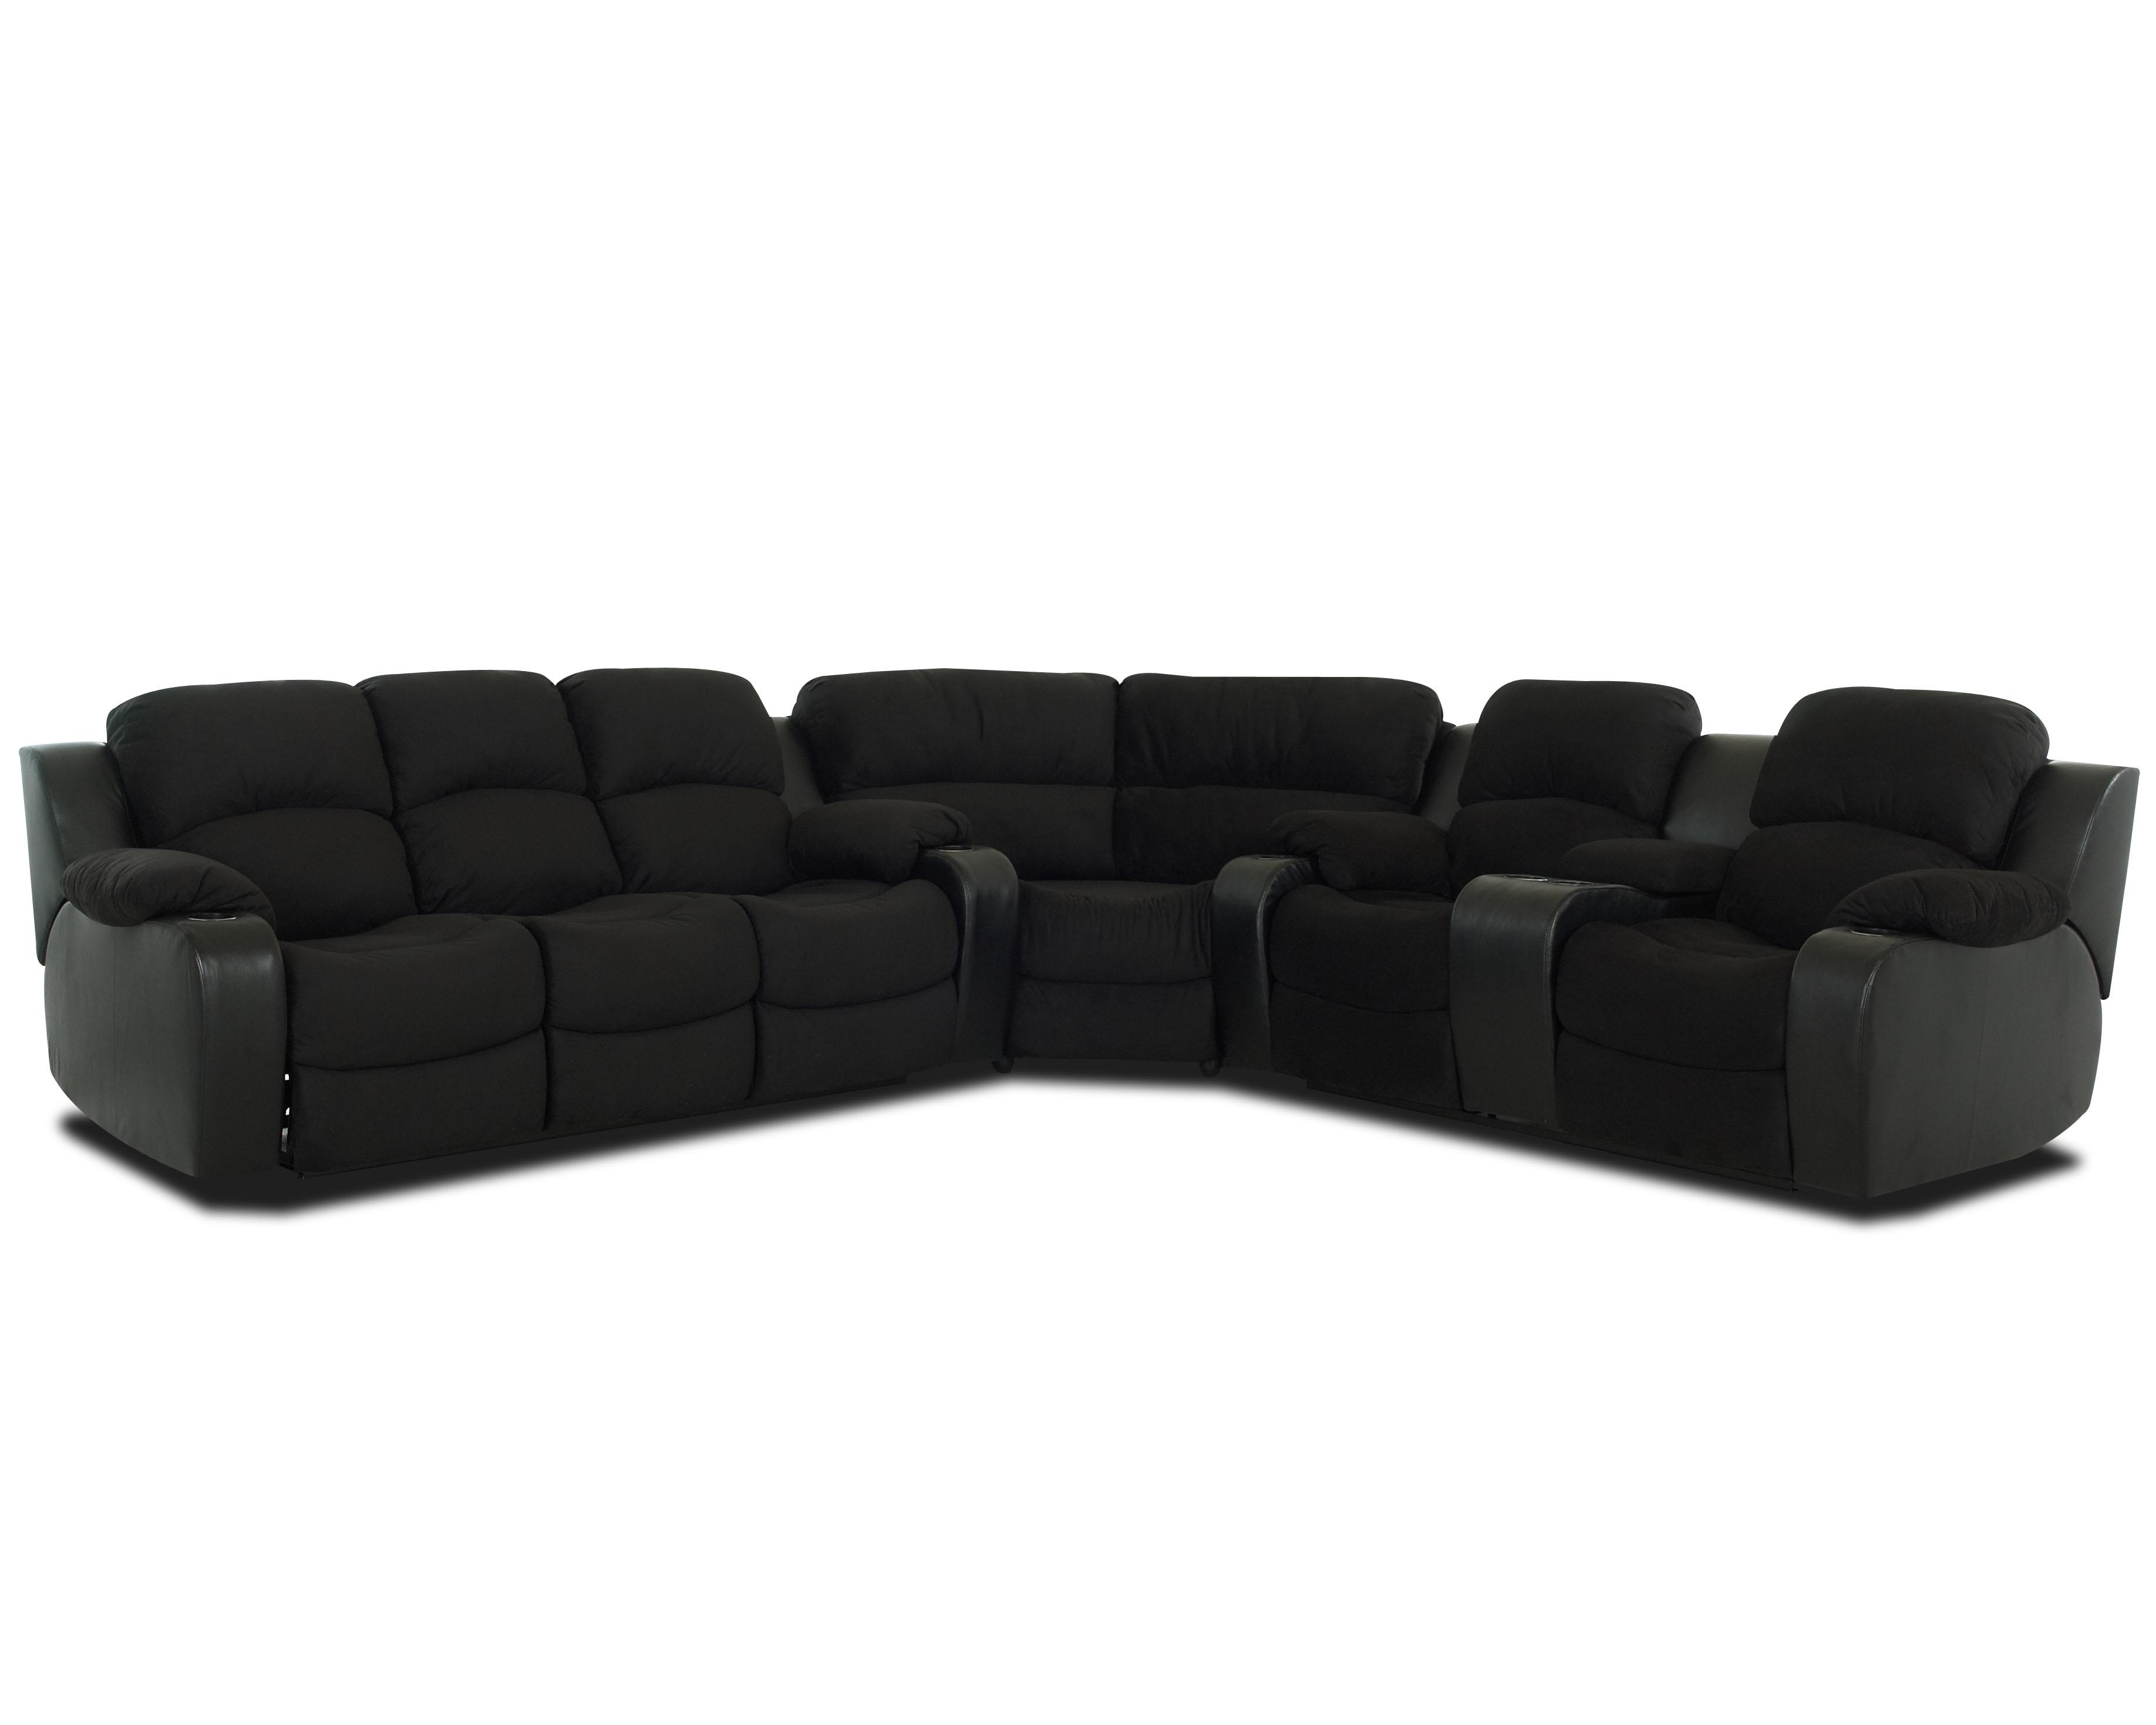 Klaussner Grand Reclining Sectional Sofa With Console – Ahfa Intended For Jedd Fabric Reclining Sectional Sofas (View 10 of 10)